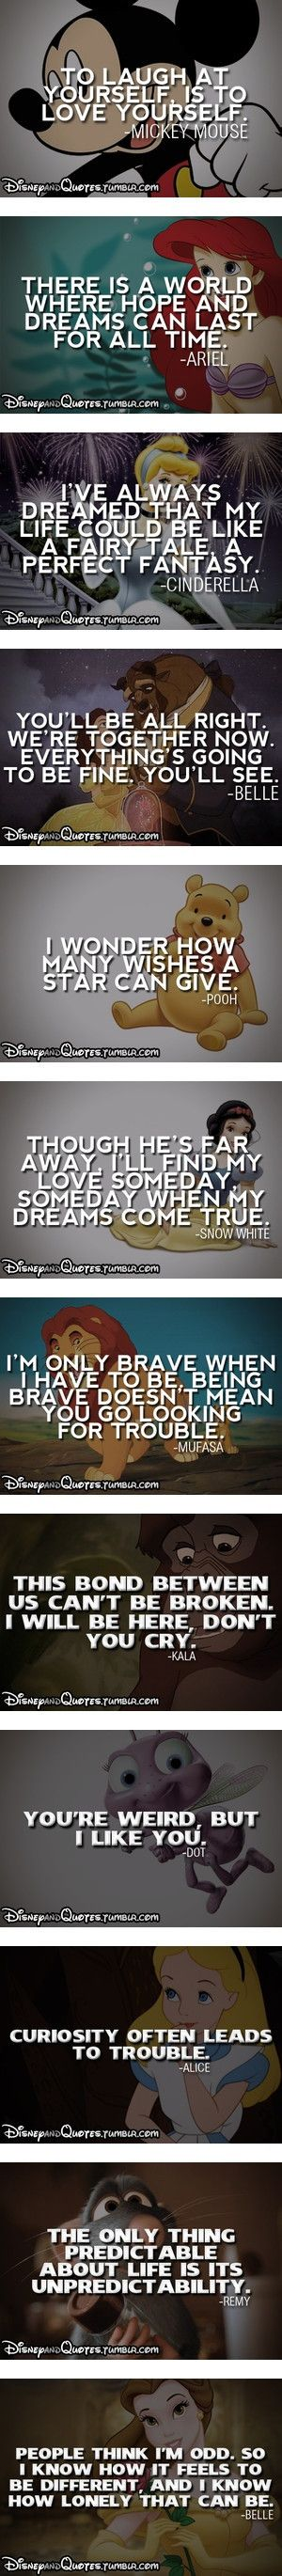 Quotes from Disney movies | #geek